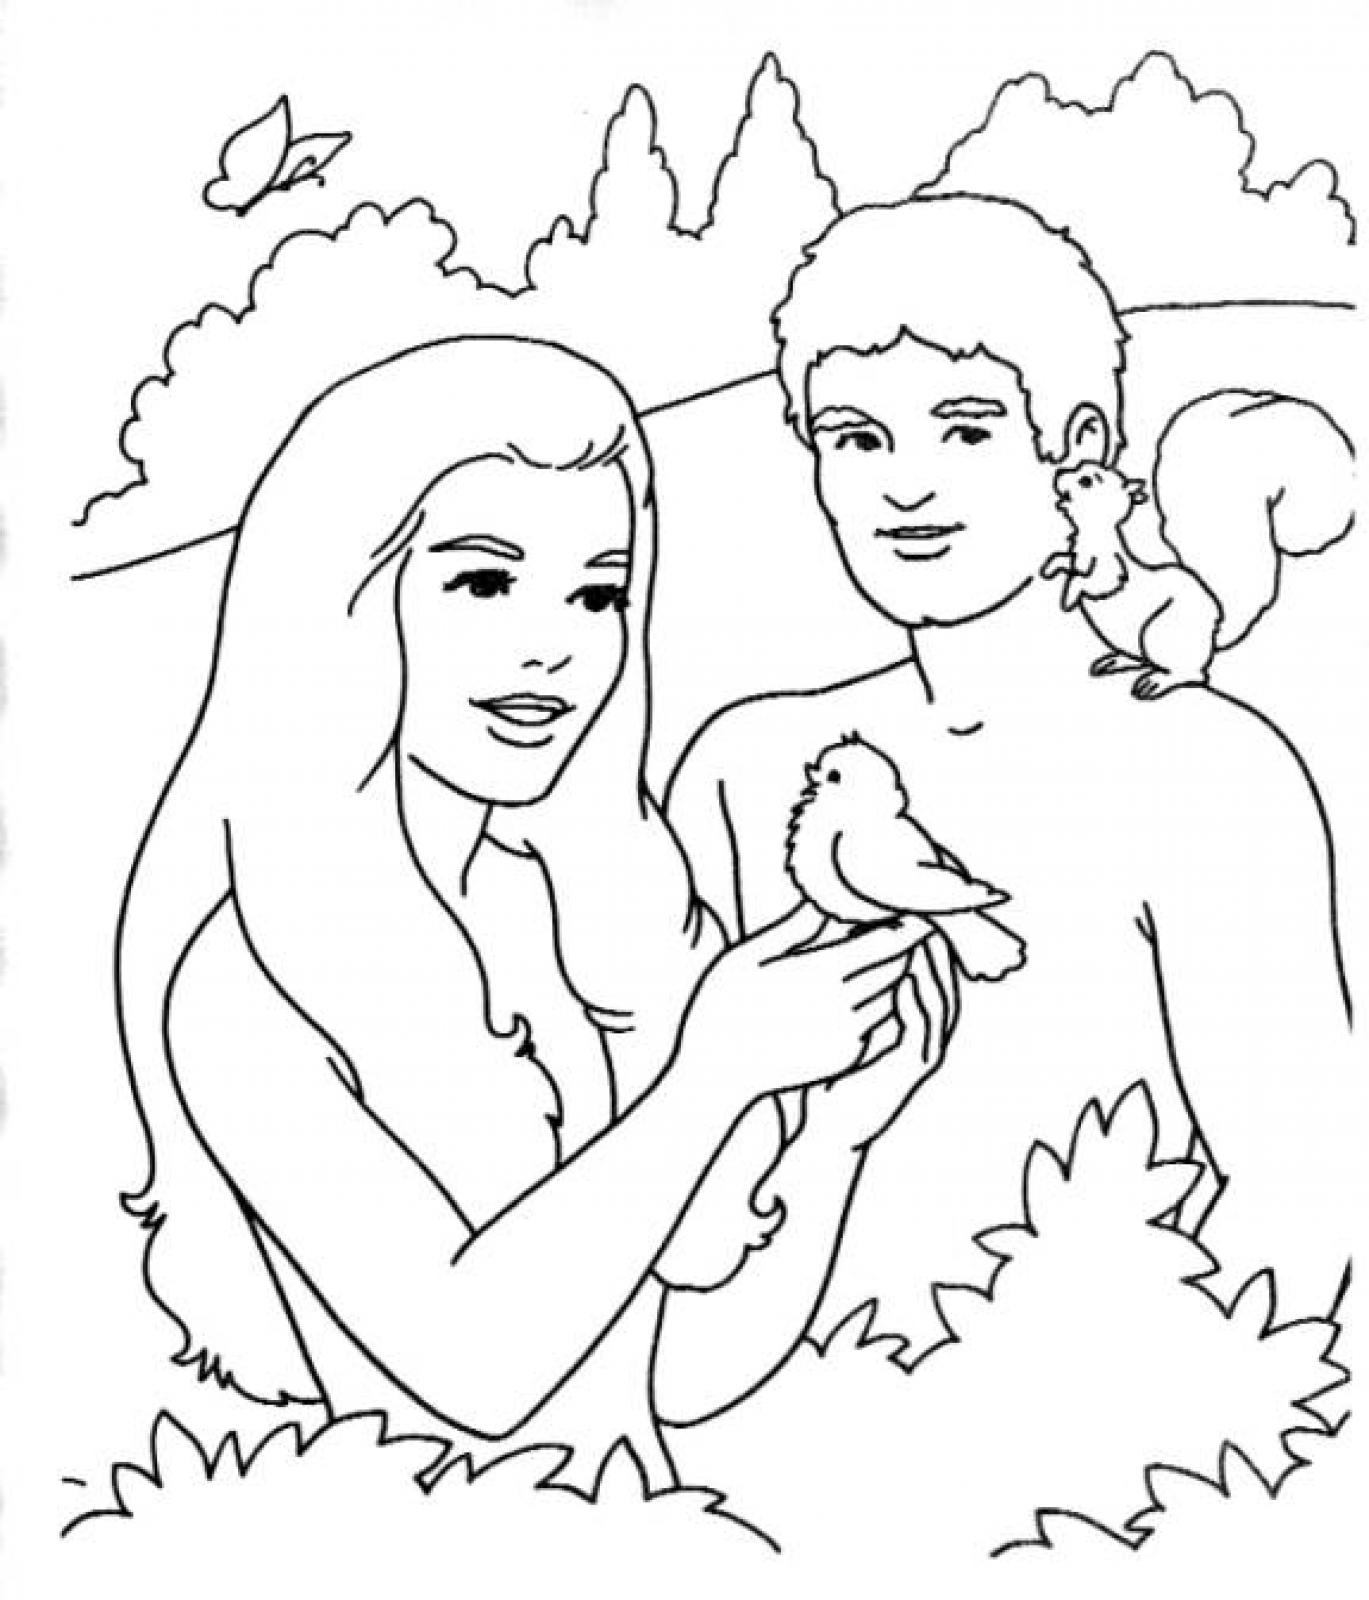 adam and eve coloring page printable adam and eve coloring pages for kids cool2bkids page and eve coloring adam